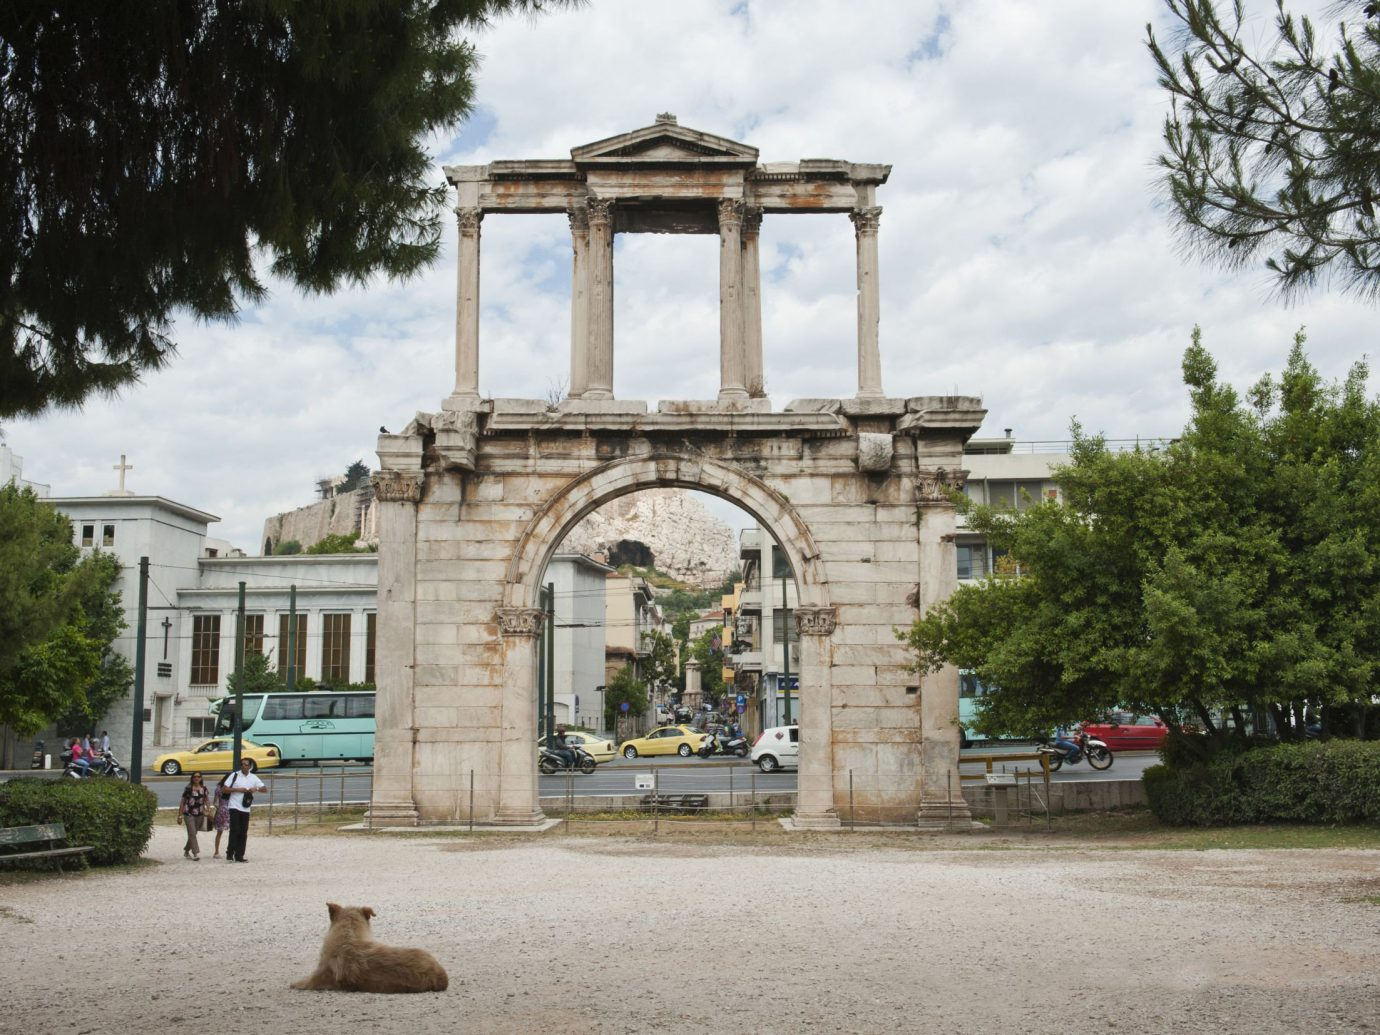 Trip Ideas tree outdoor building landmark Town arch Architecture stone estate monument ancient history shrine